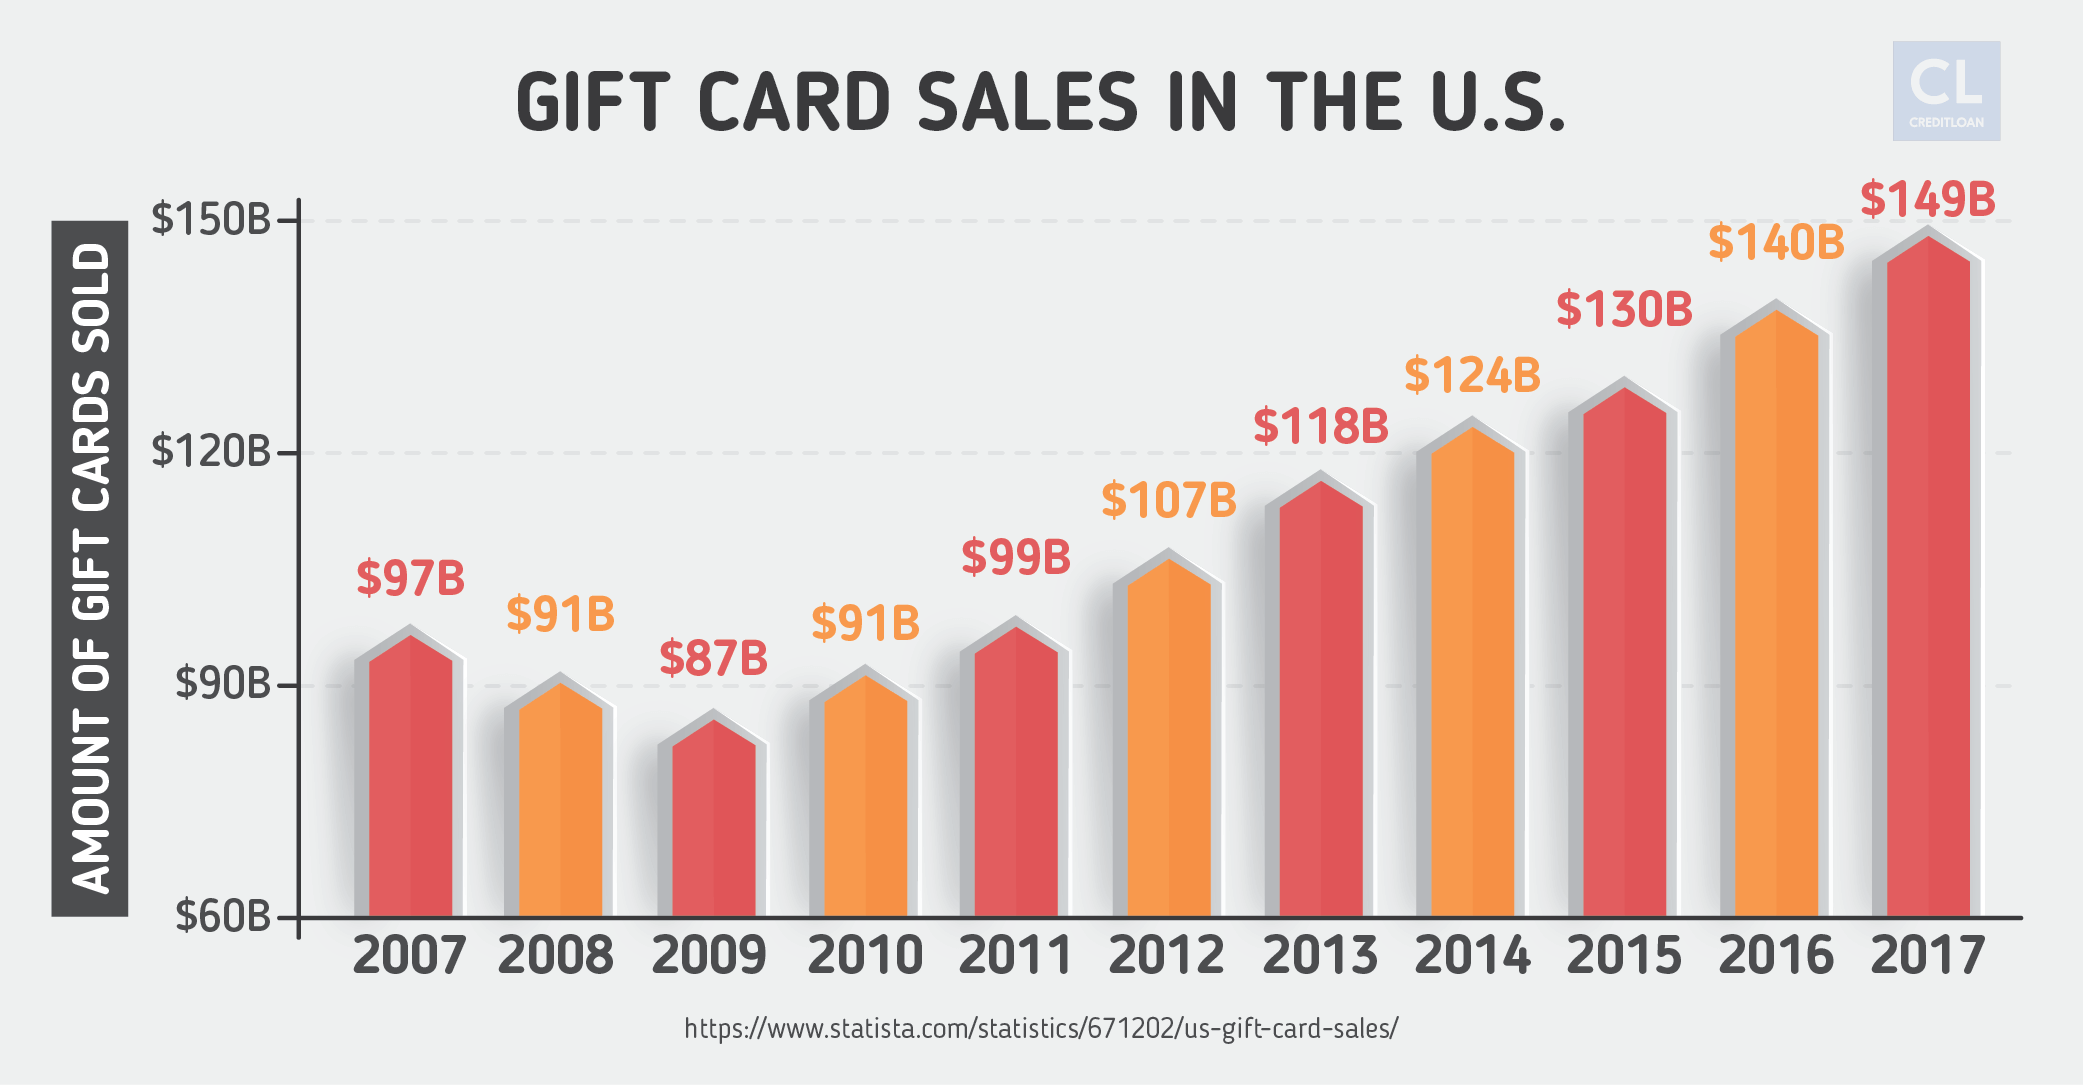 Gift Card Sales in the U.S. from 2007-2017